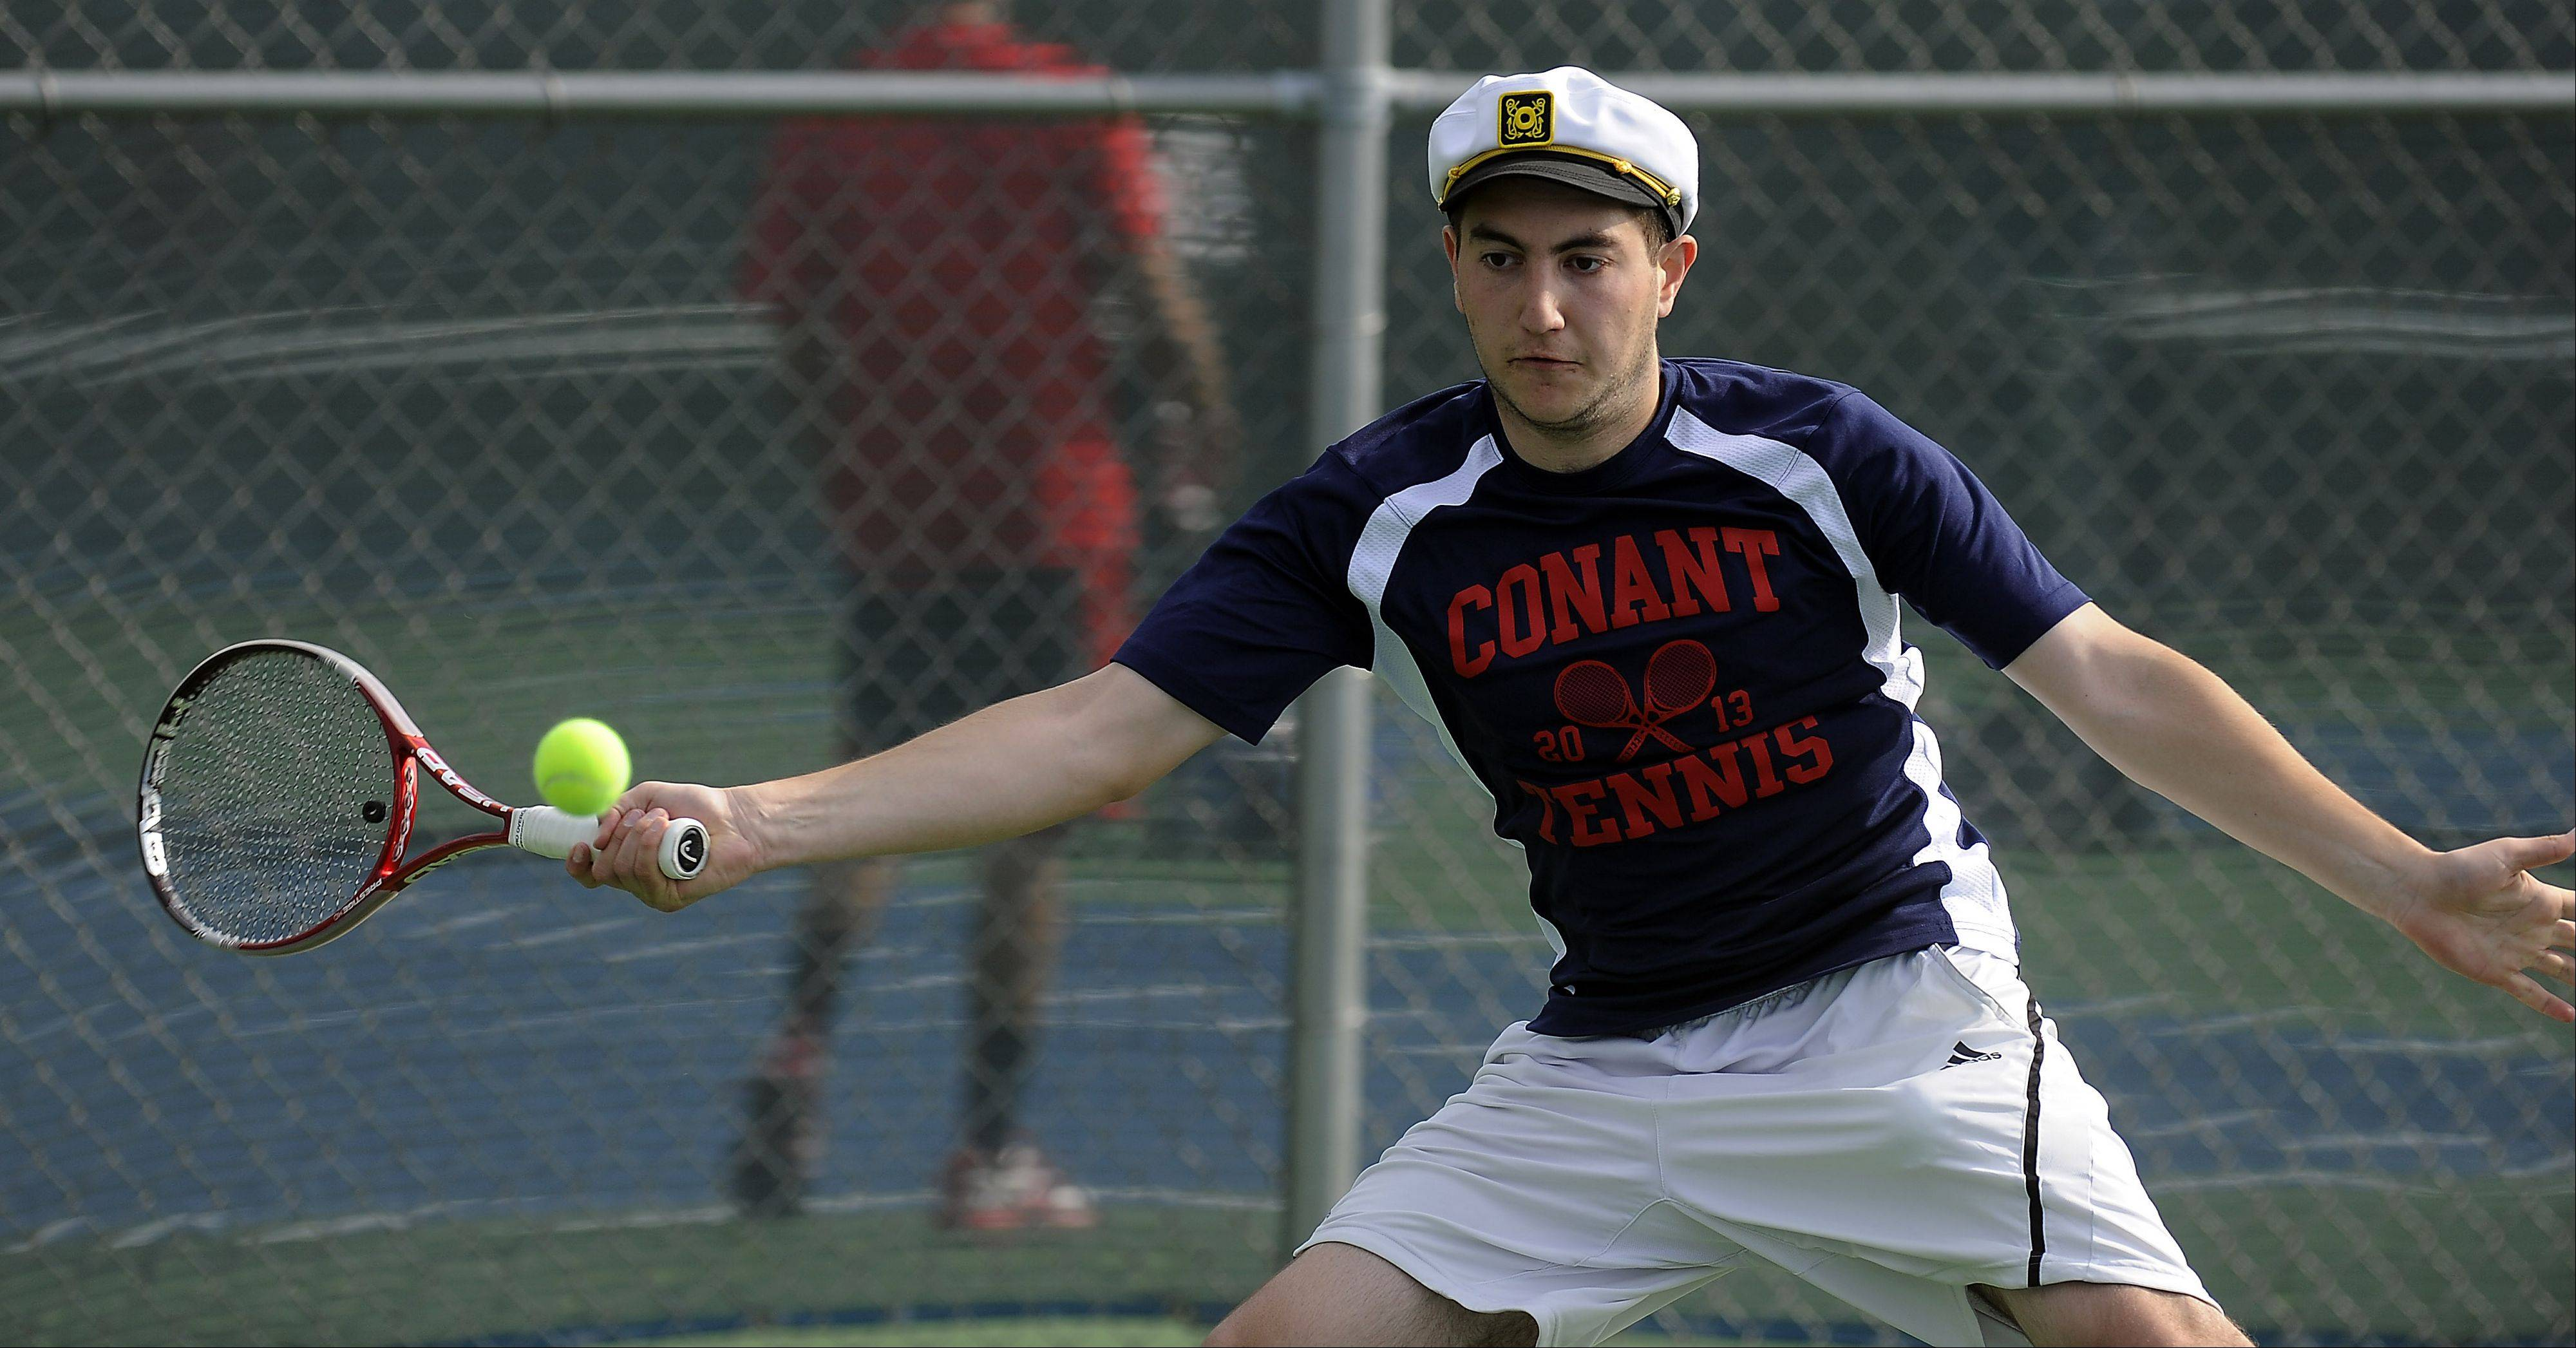 Conant's Peter Itskovich eyes the ball during his matchup with Barrington's Varun Parekh during the Mid-Suburban League No. 1 singles quarterfinals at Wheeling on Saturday.